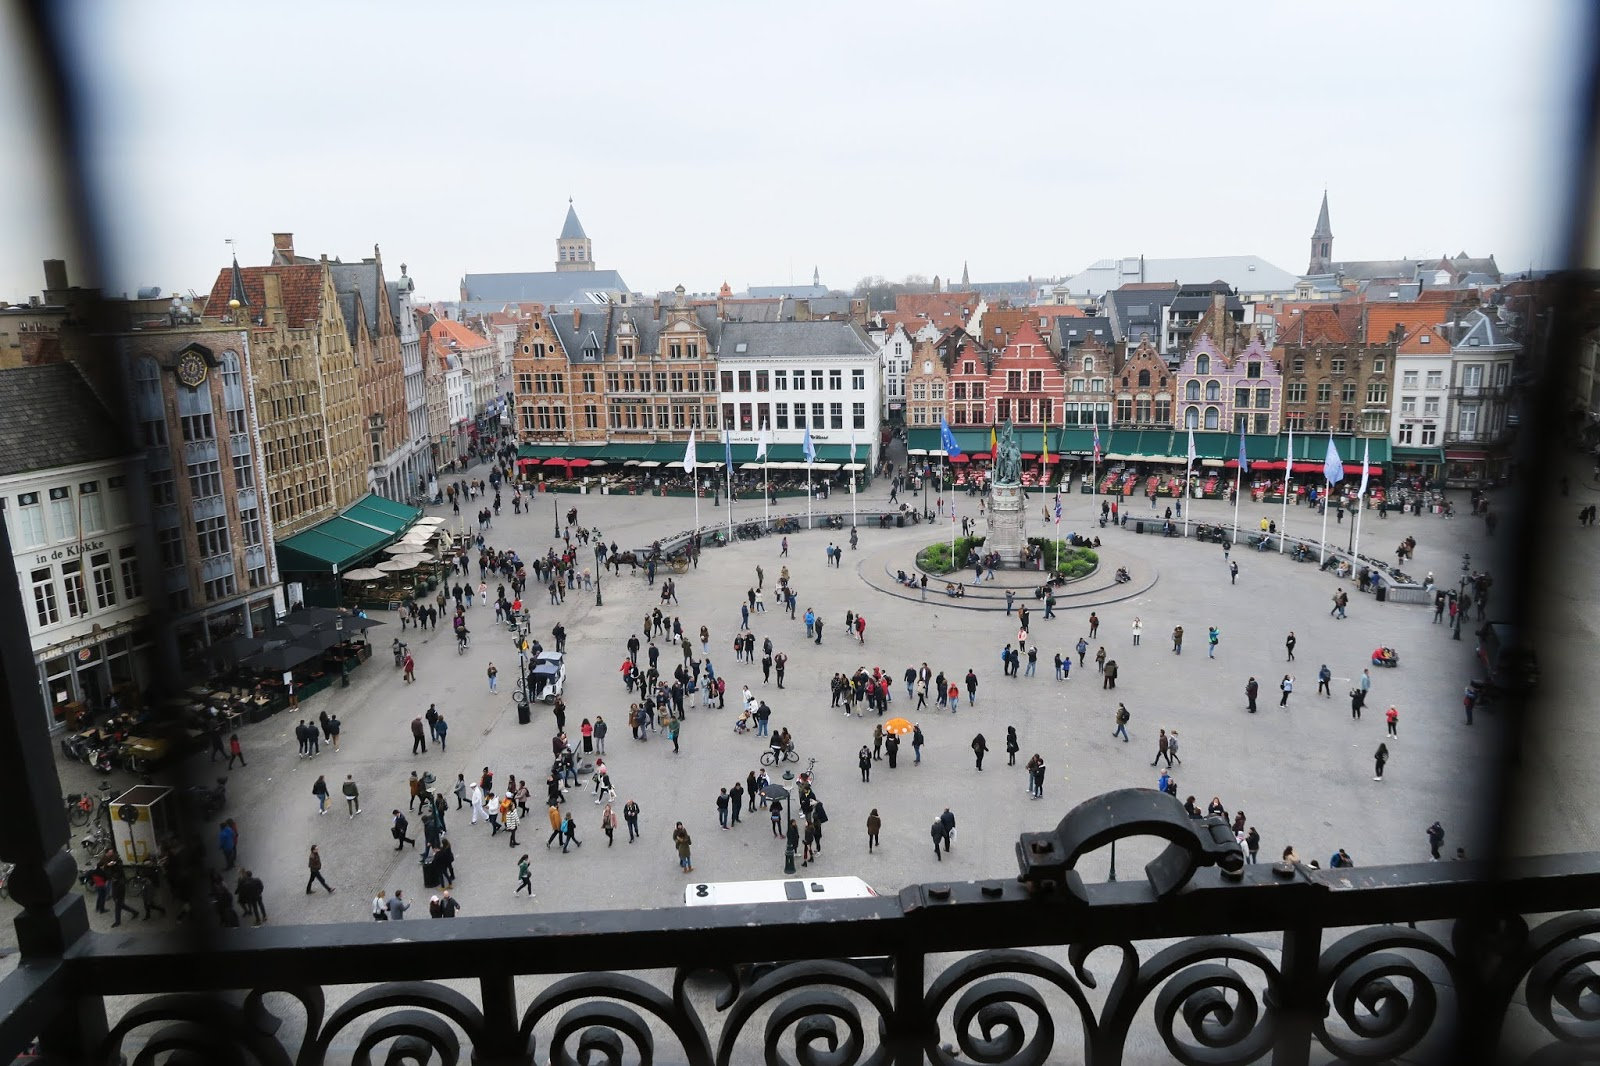 View from the first floor of the Belfry of Bruges. Bruges Market square can be seen below.